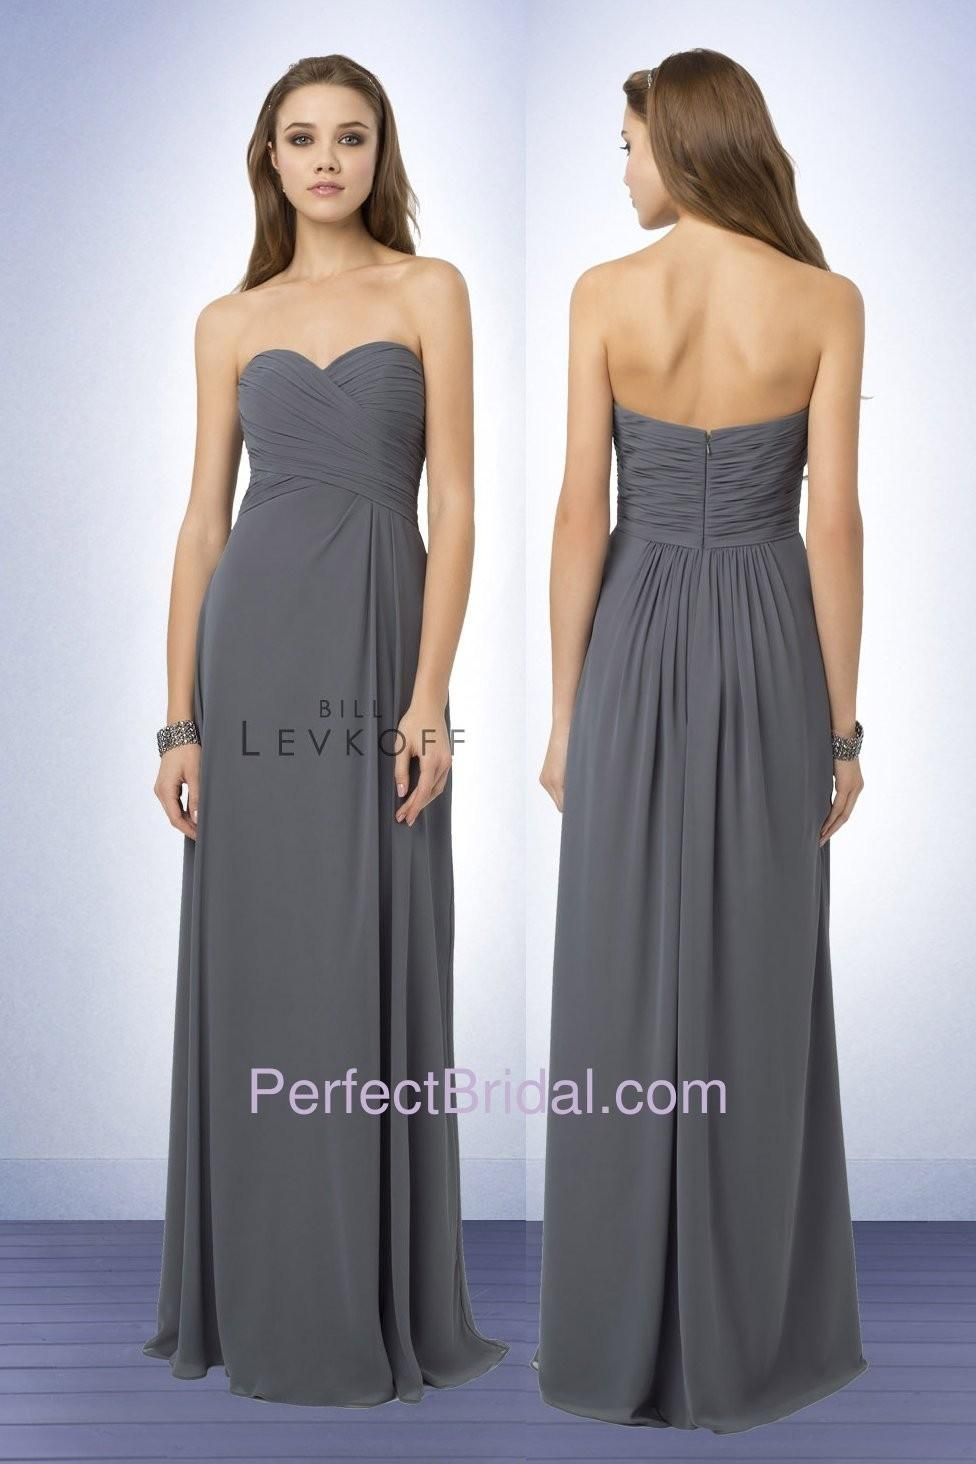 5b79c5fa8104a Bill Levkoff Gray Bridesmaid Dresses – Fashion dresses